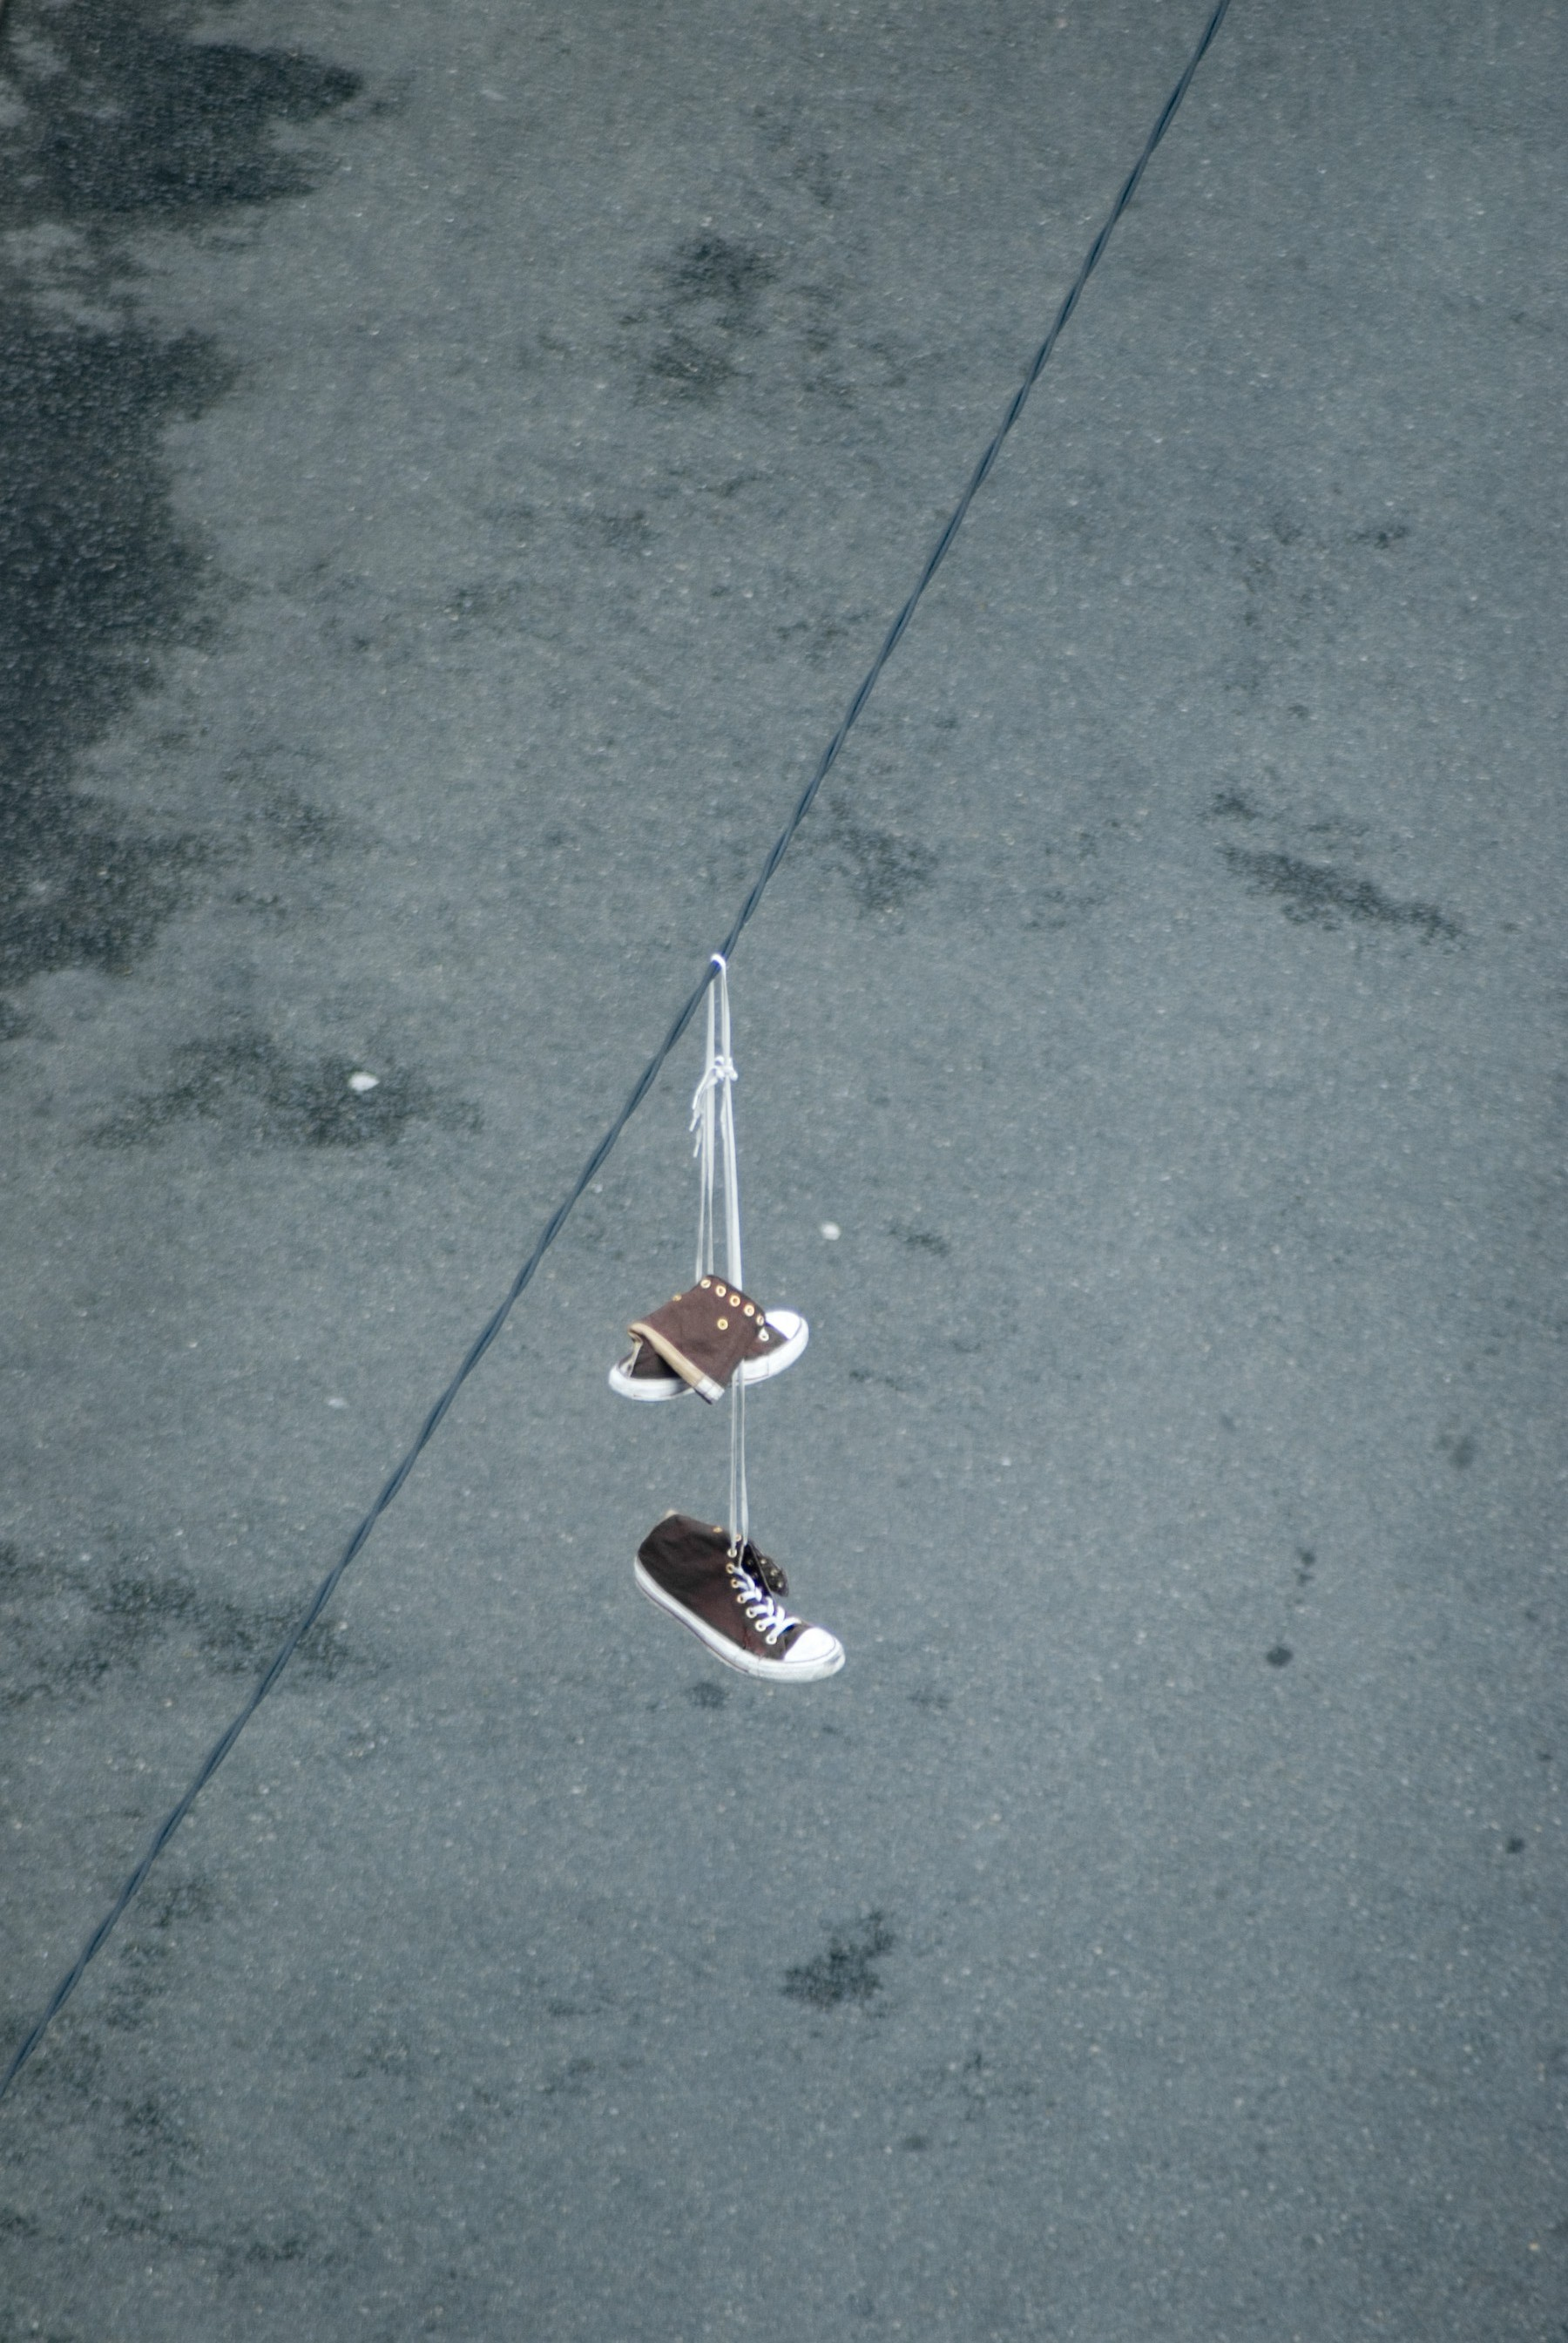 sneakers hanging on a power cable